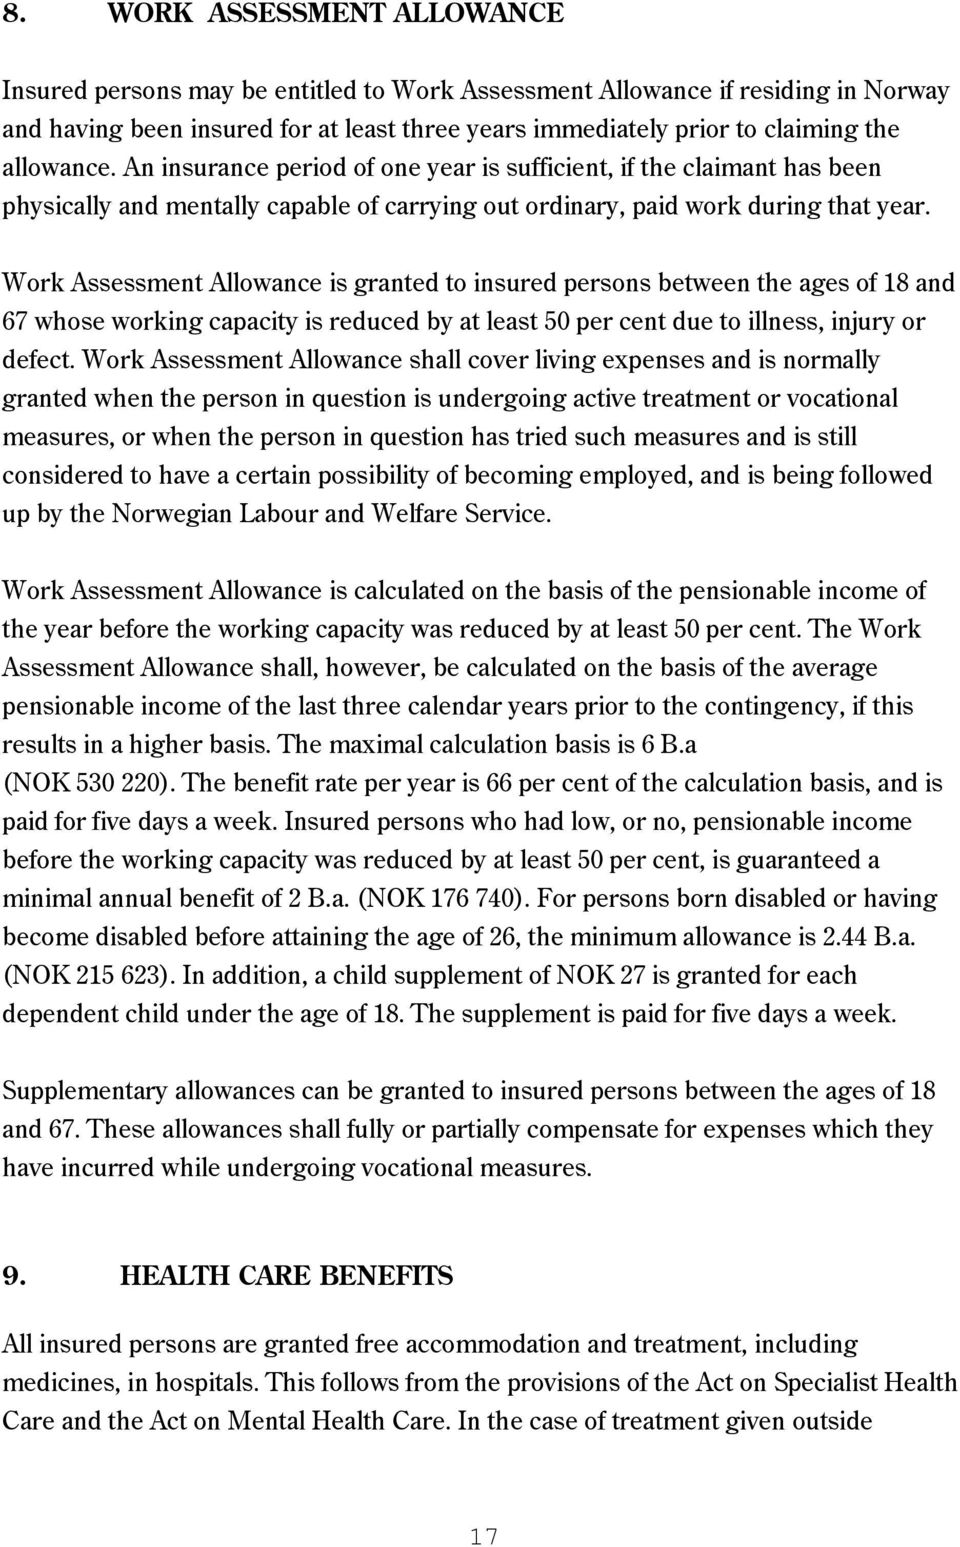 Work Assessment Allowance is granted to insured persons between the ages of 18 and 67 whose working capacity is reduced by at least 50 per cent due to illness, injury or defect.